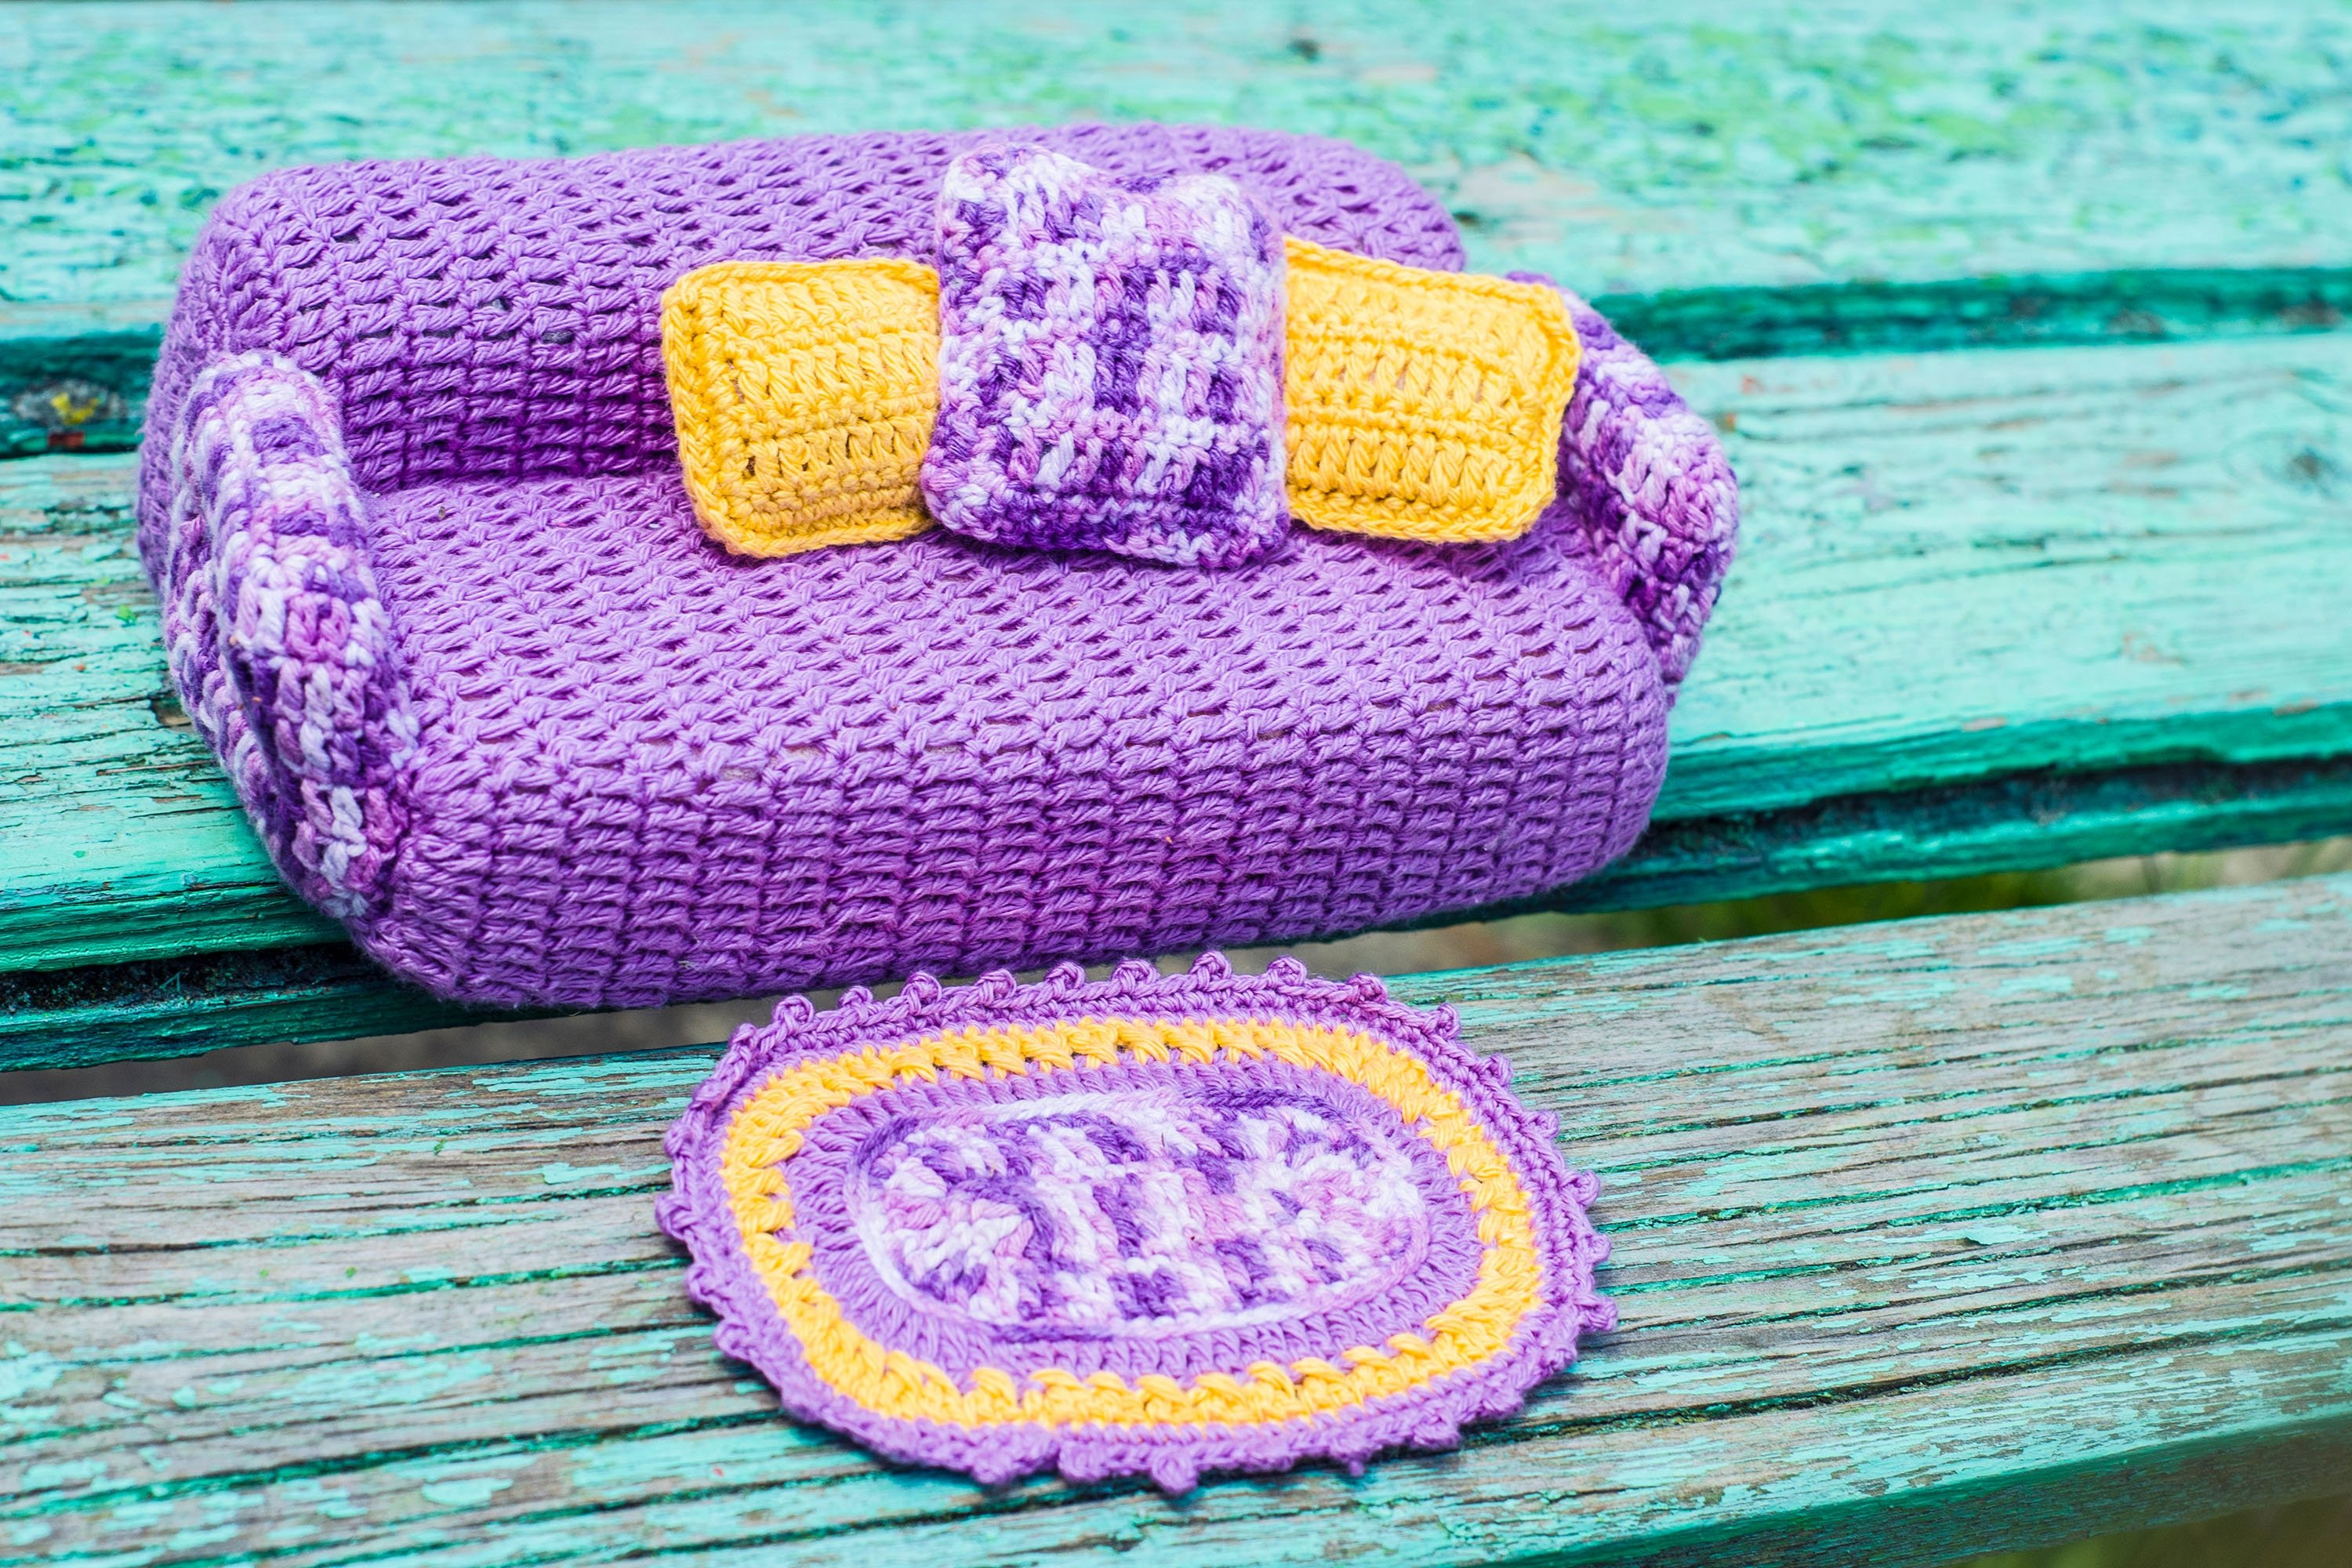 A small crocheted couch with some tiny cushions and a small rug to complete the cozy corner for cats and dolls alike. (Shutterstock Photo)